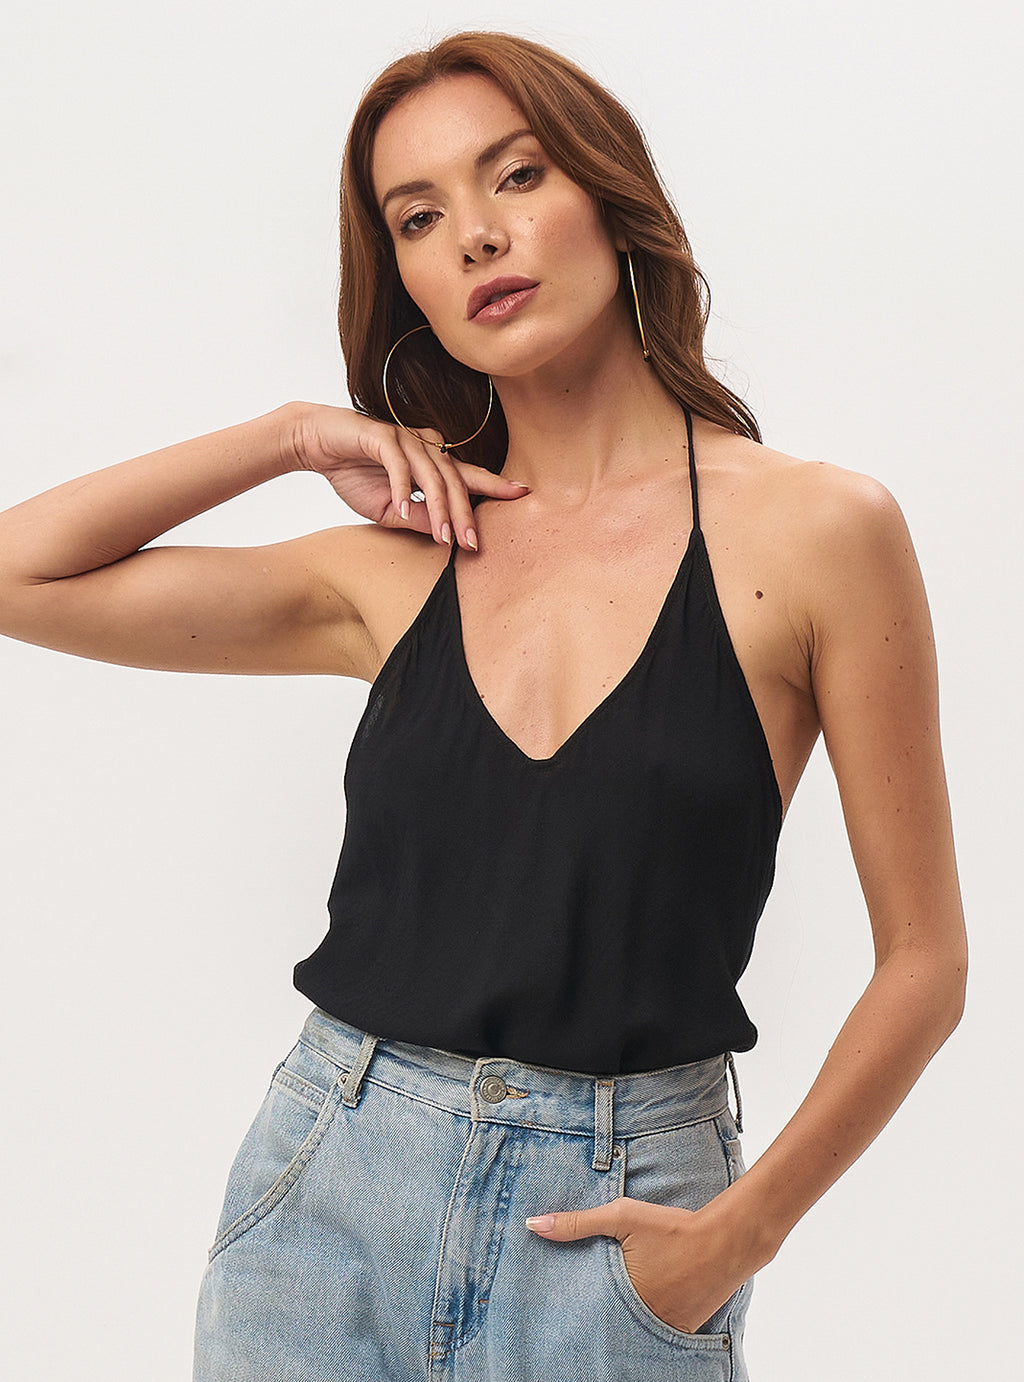 Biba Top With T-Back - Lily Jean